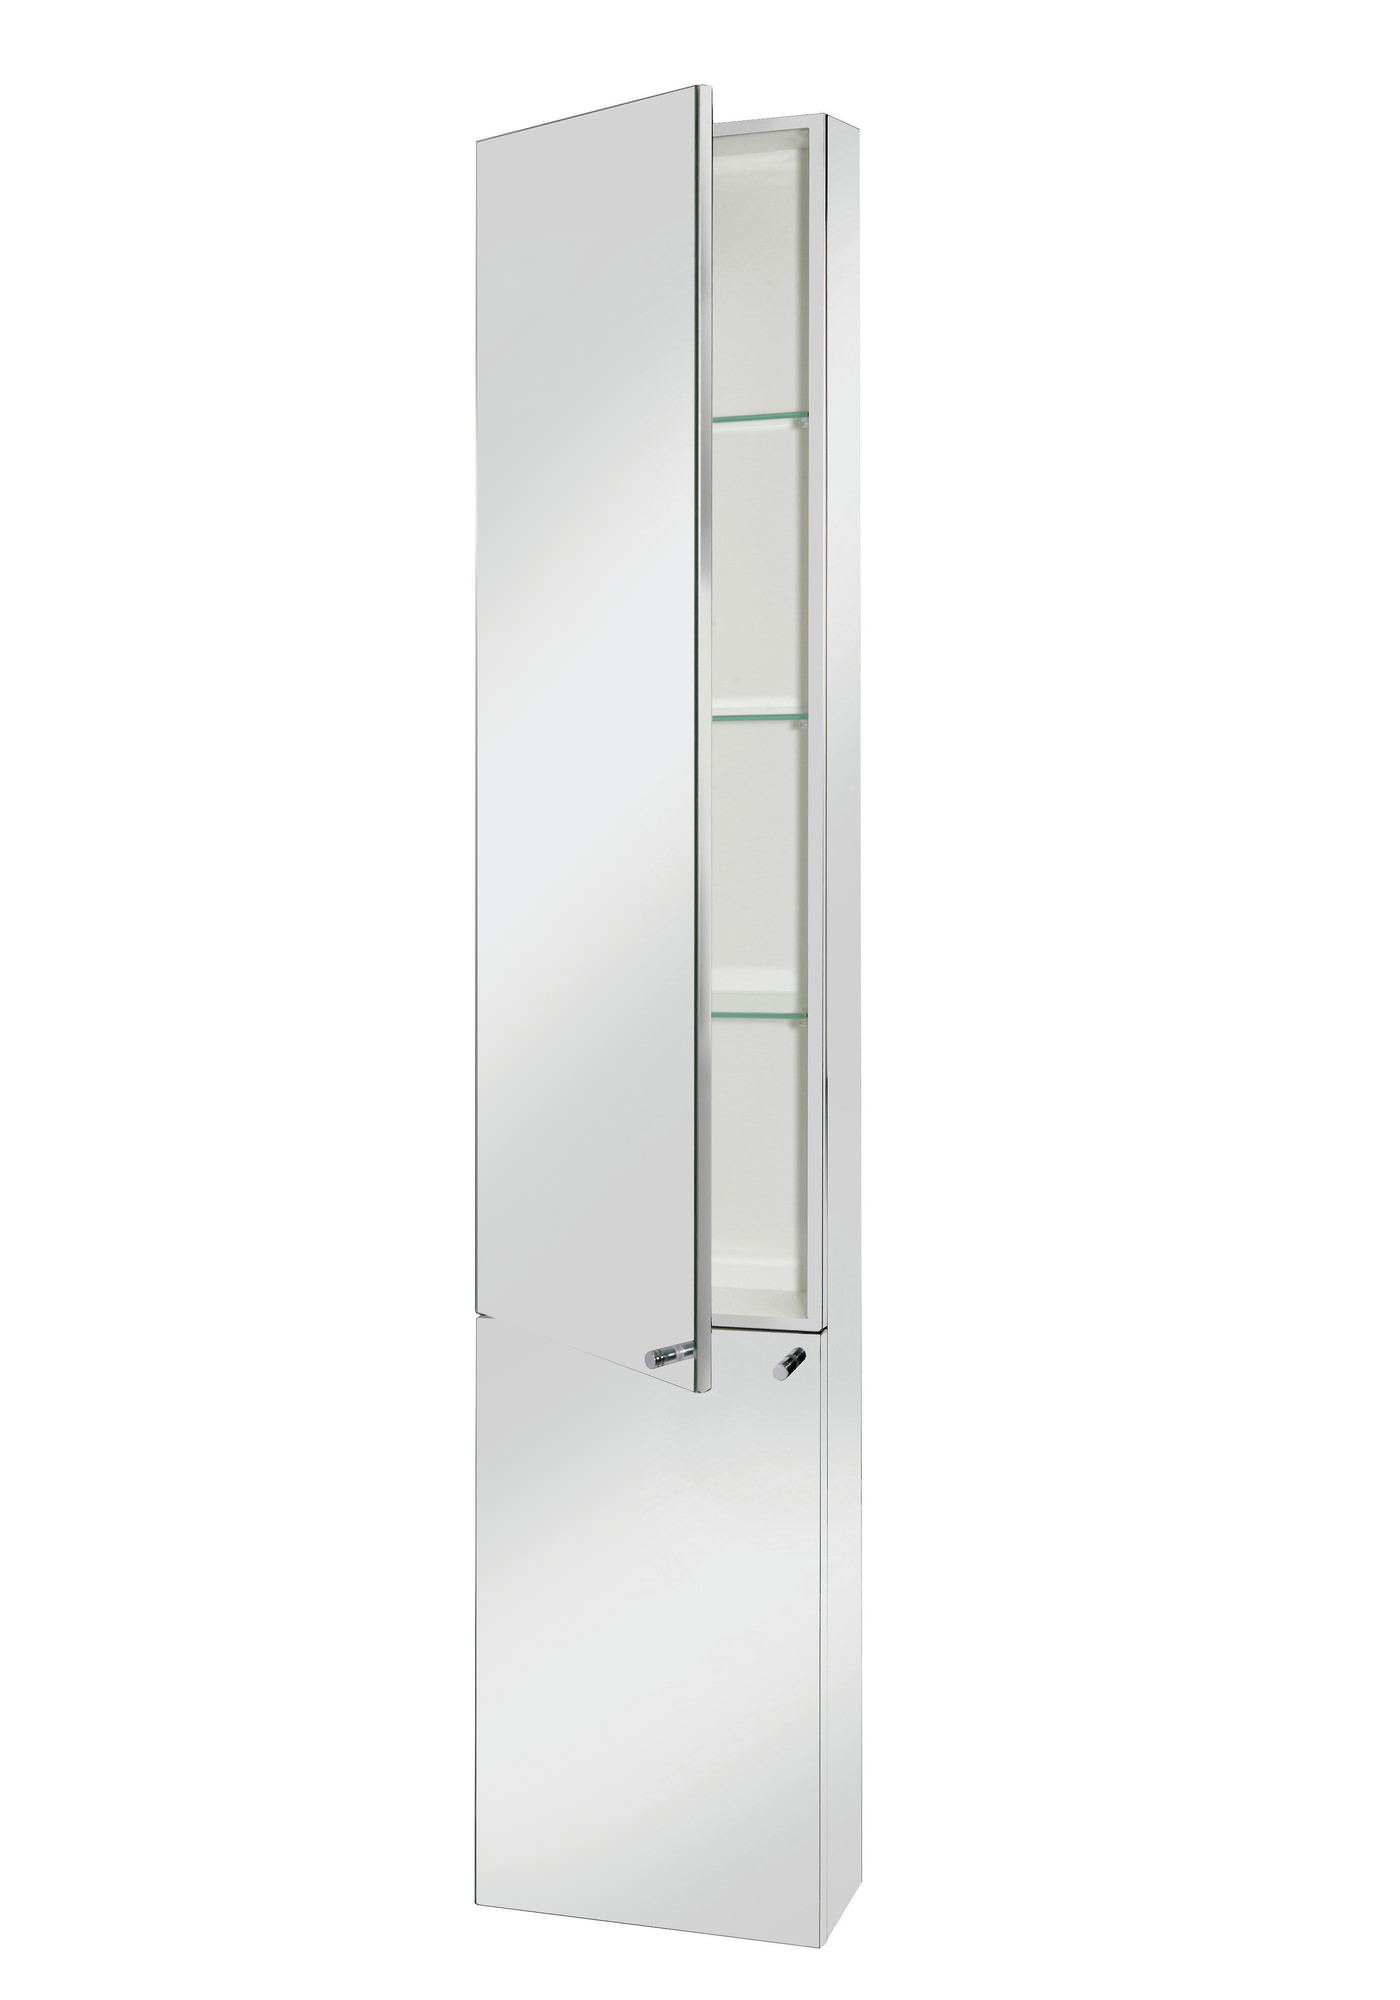 Croydex nile stainless steel tall cabinet wc796005 for Tall stainless steel bathroom cabinet